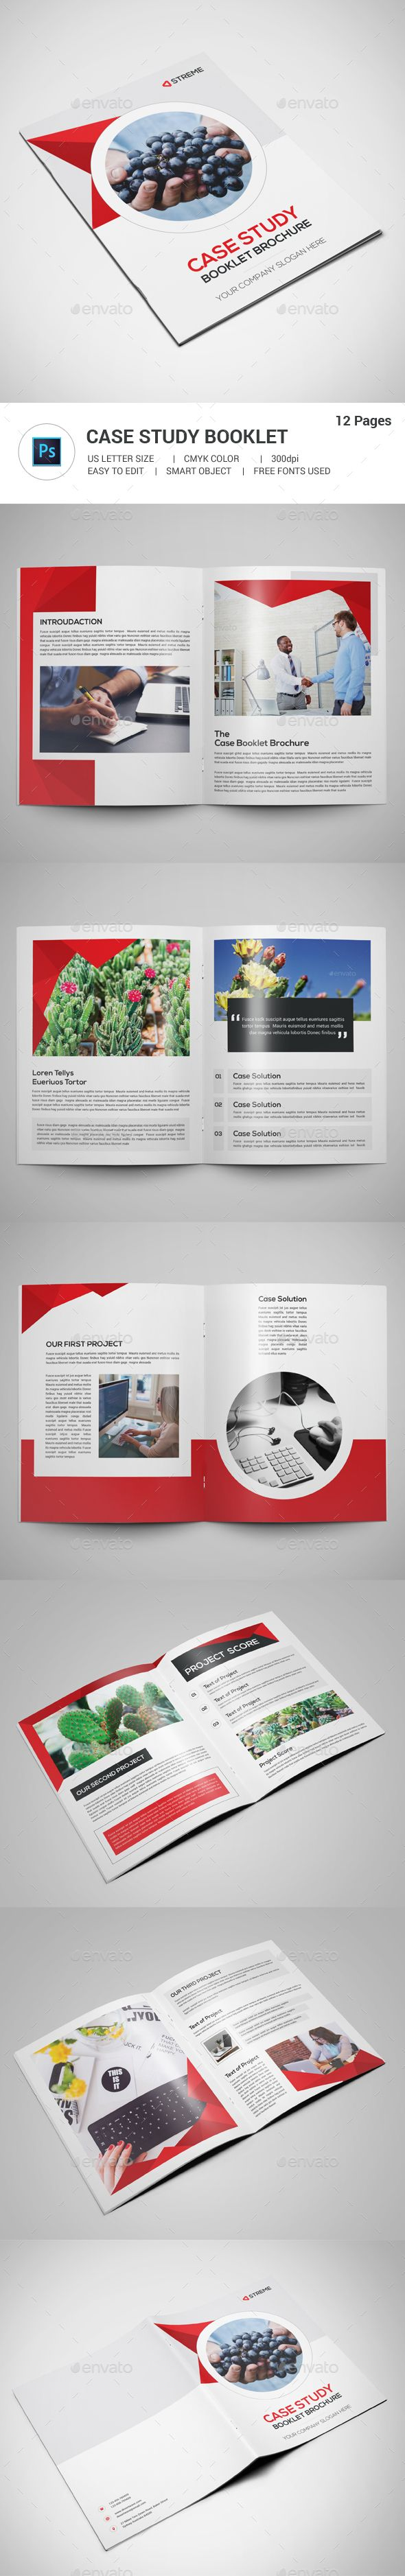 25+ best ideas about Booklet template on Pinterest | Brochure ...